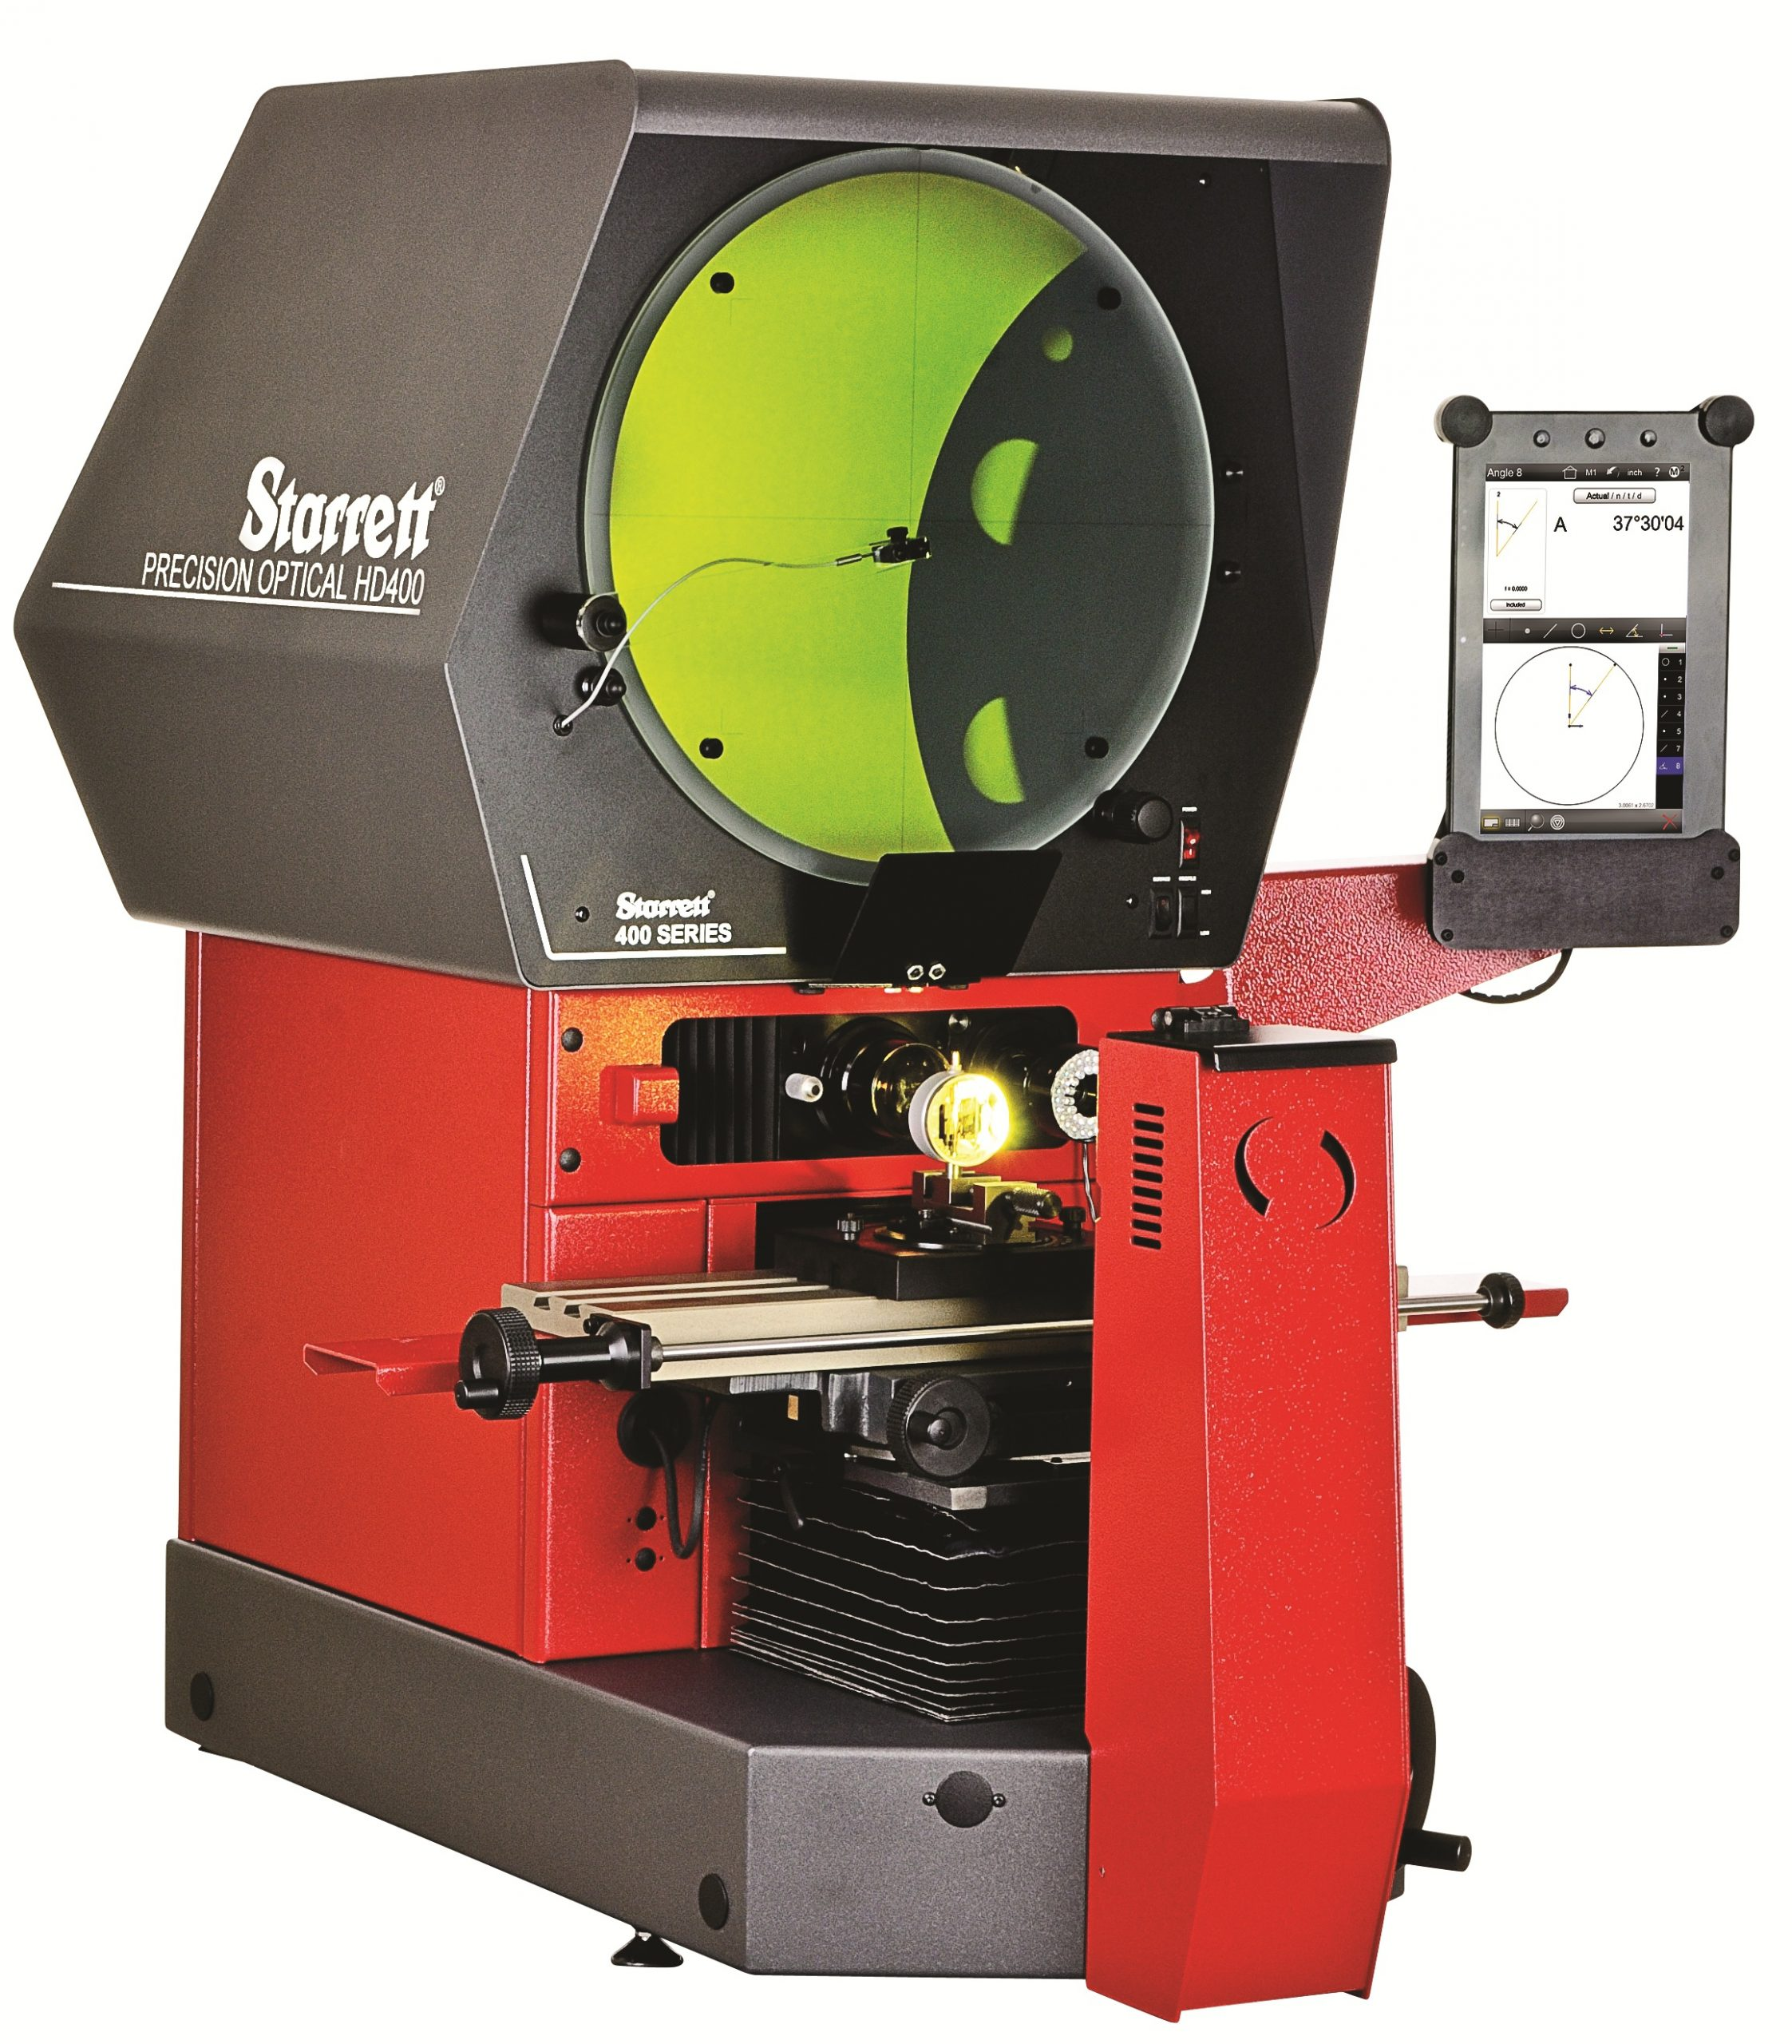 Horizontal Comparator brightest image in the industry